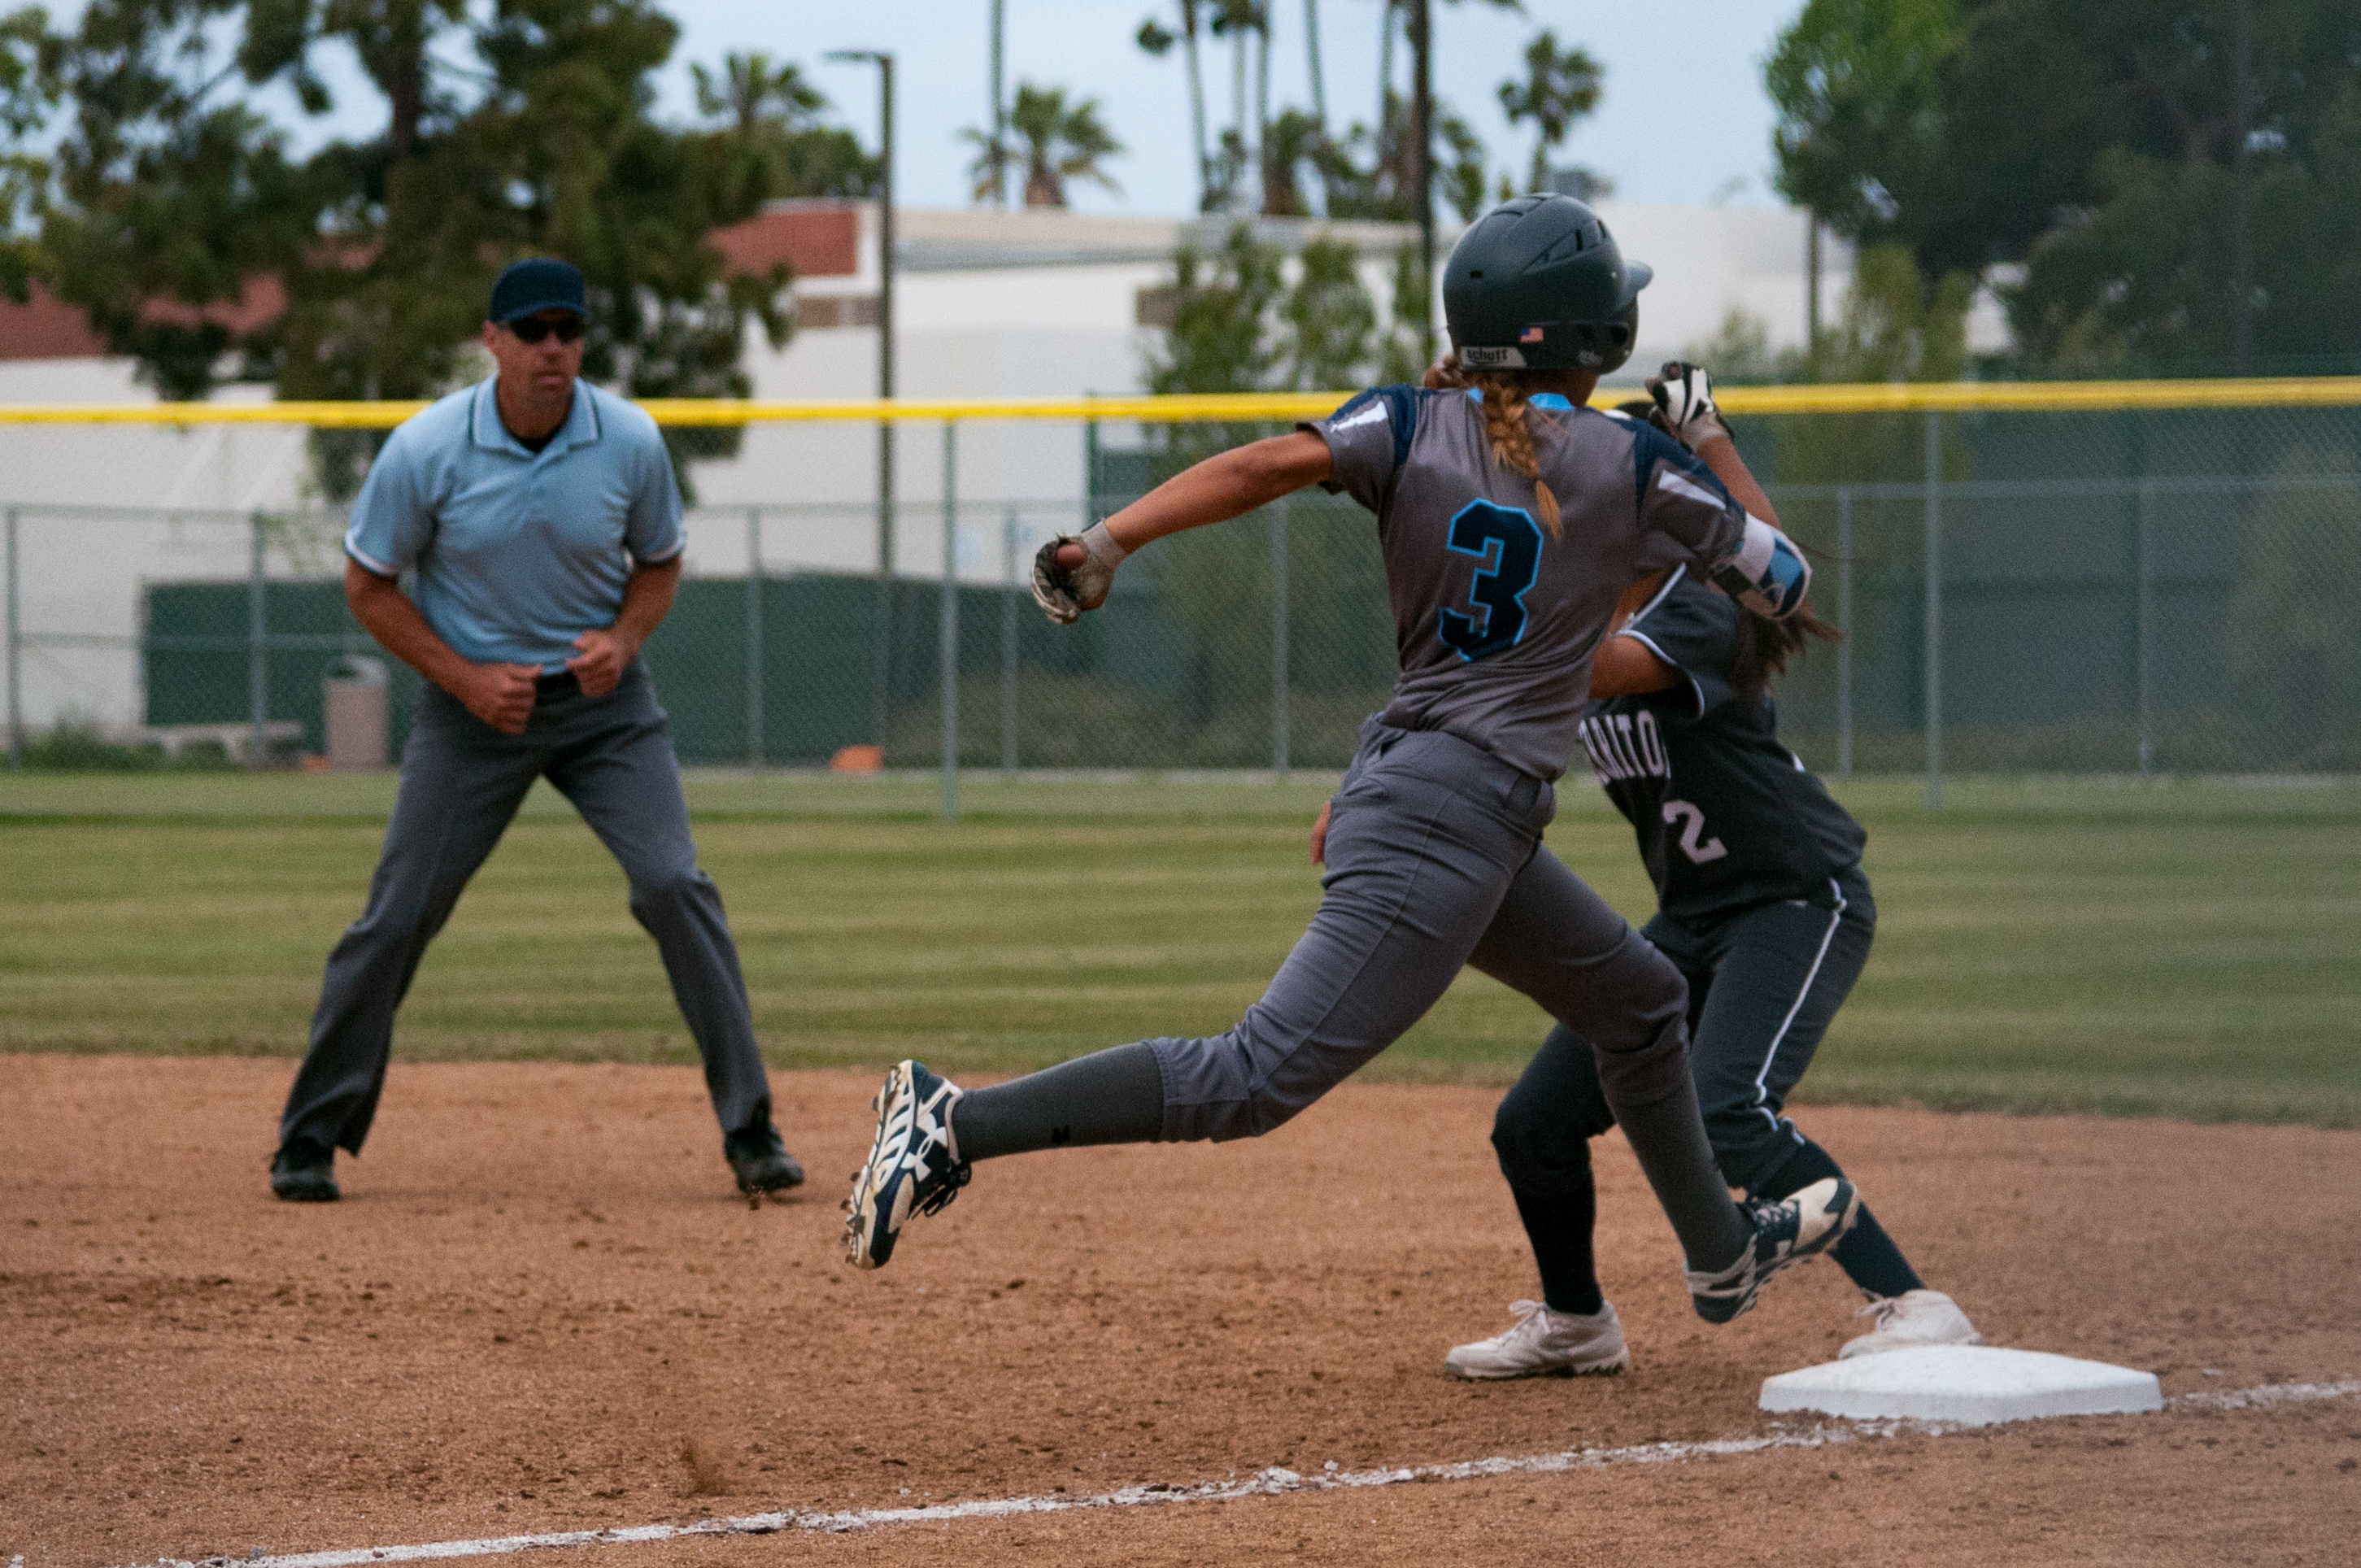 Sophomore outfielder Kattya Calderon (No.3) safely makes to first base during El Camino's 8-2 win over visiting Cerritos College on Thursday, April 6. Photo credit: Osvaldo Deras